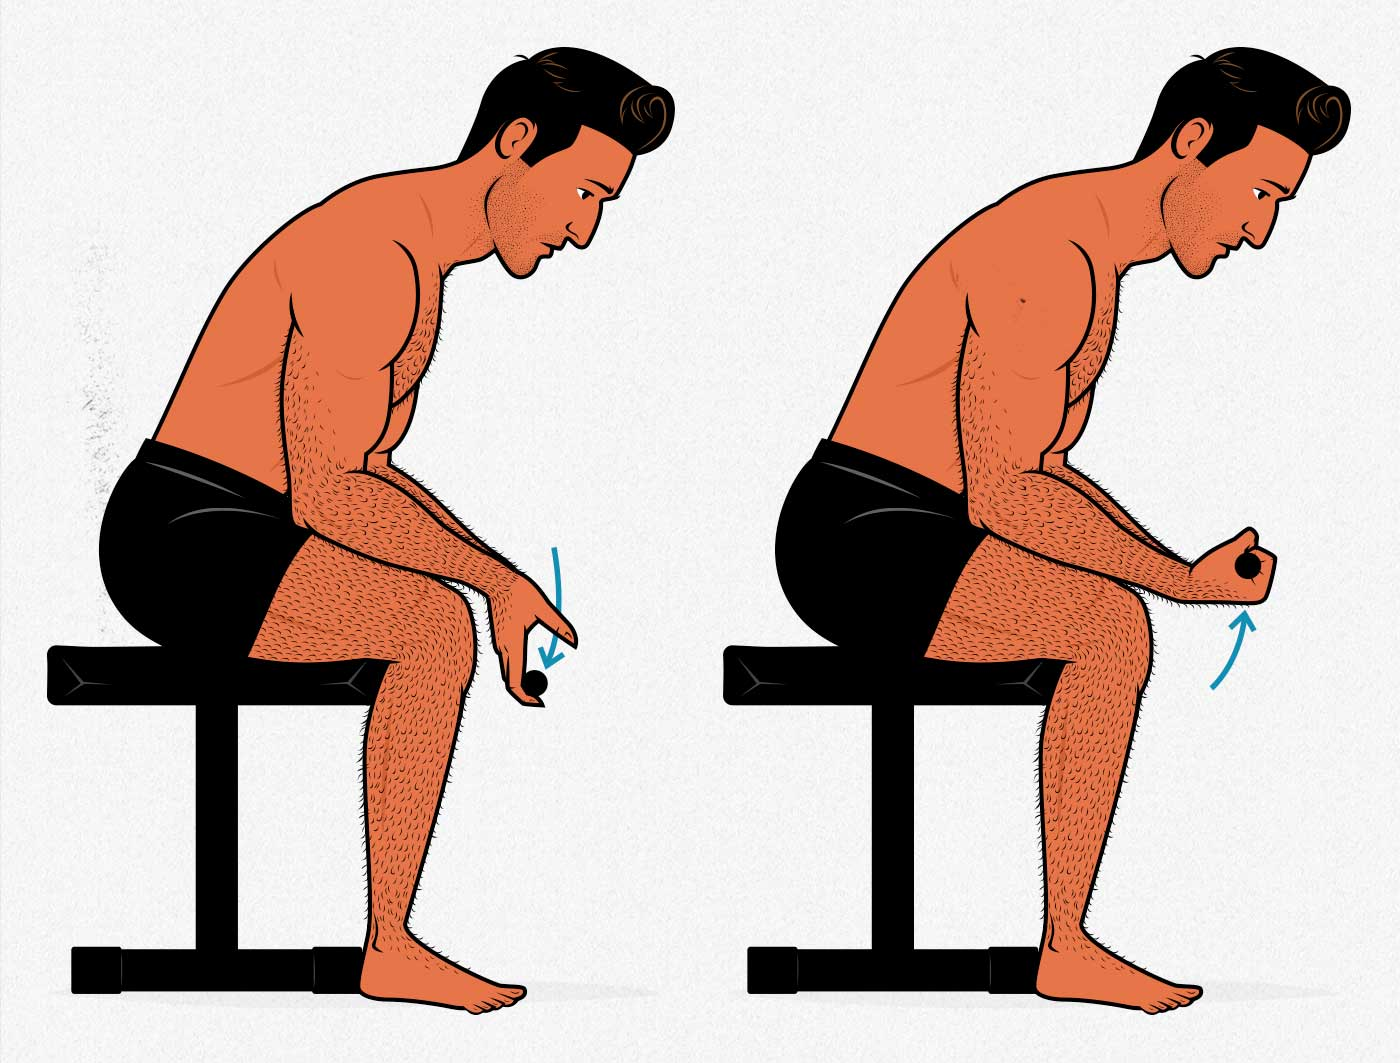 Illustration of a bodybuilder showing how to do the seated wrist curl exercise to build bigger forearms.